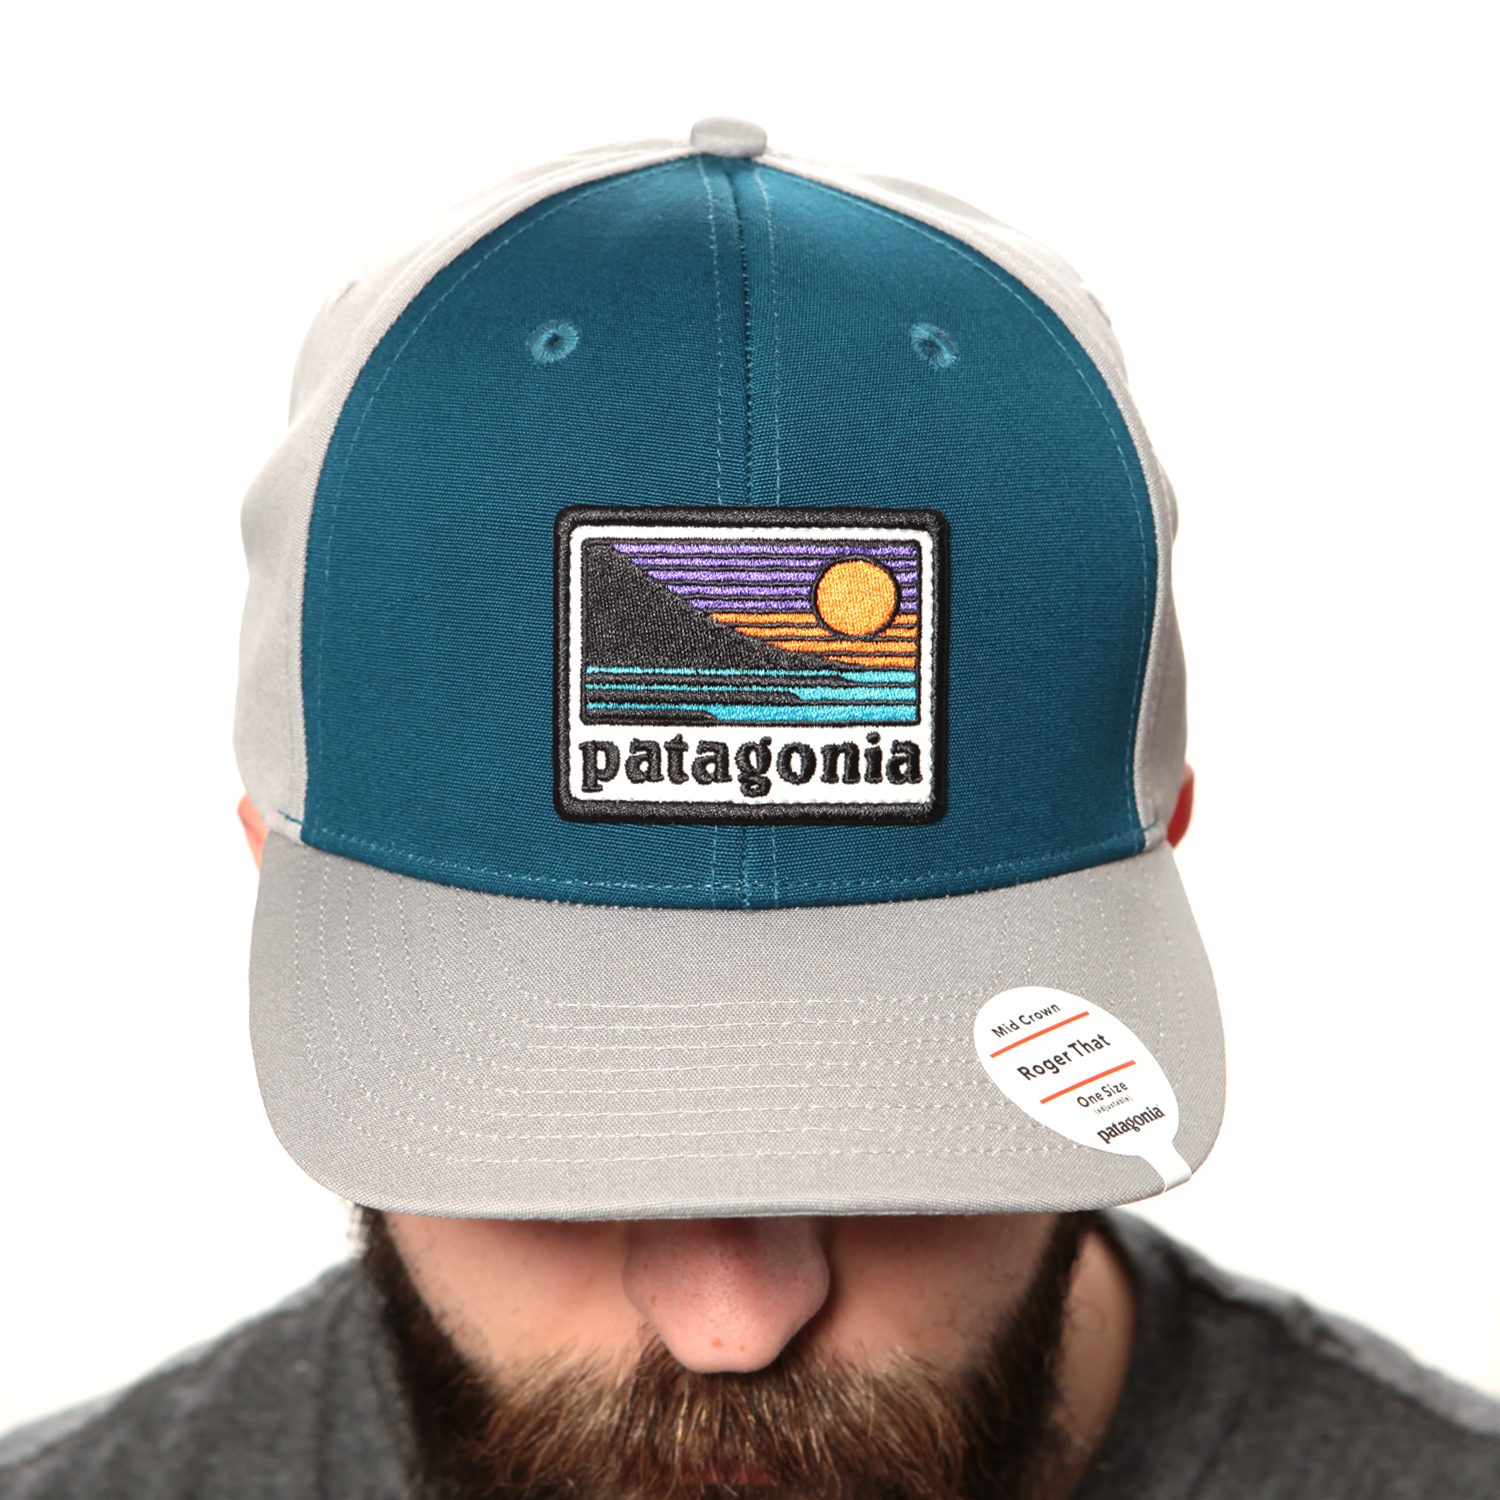 7a219611d5 Vendita online Up   Out Roger Hat - Blue - Patagonia - Cappelli ...